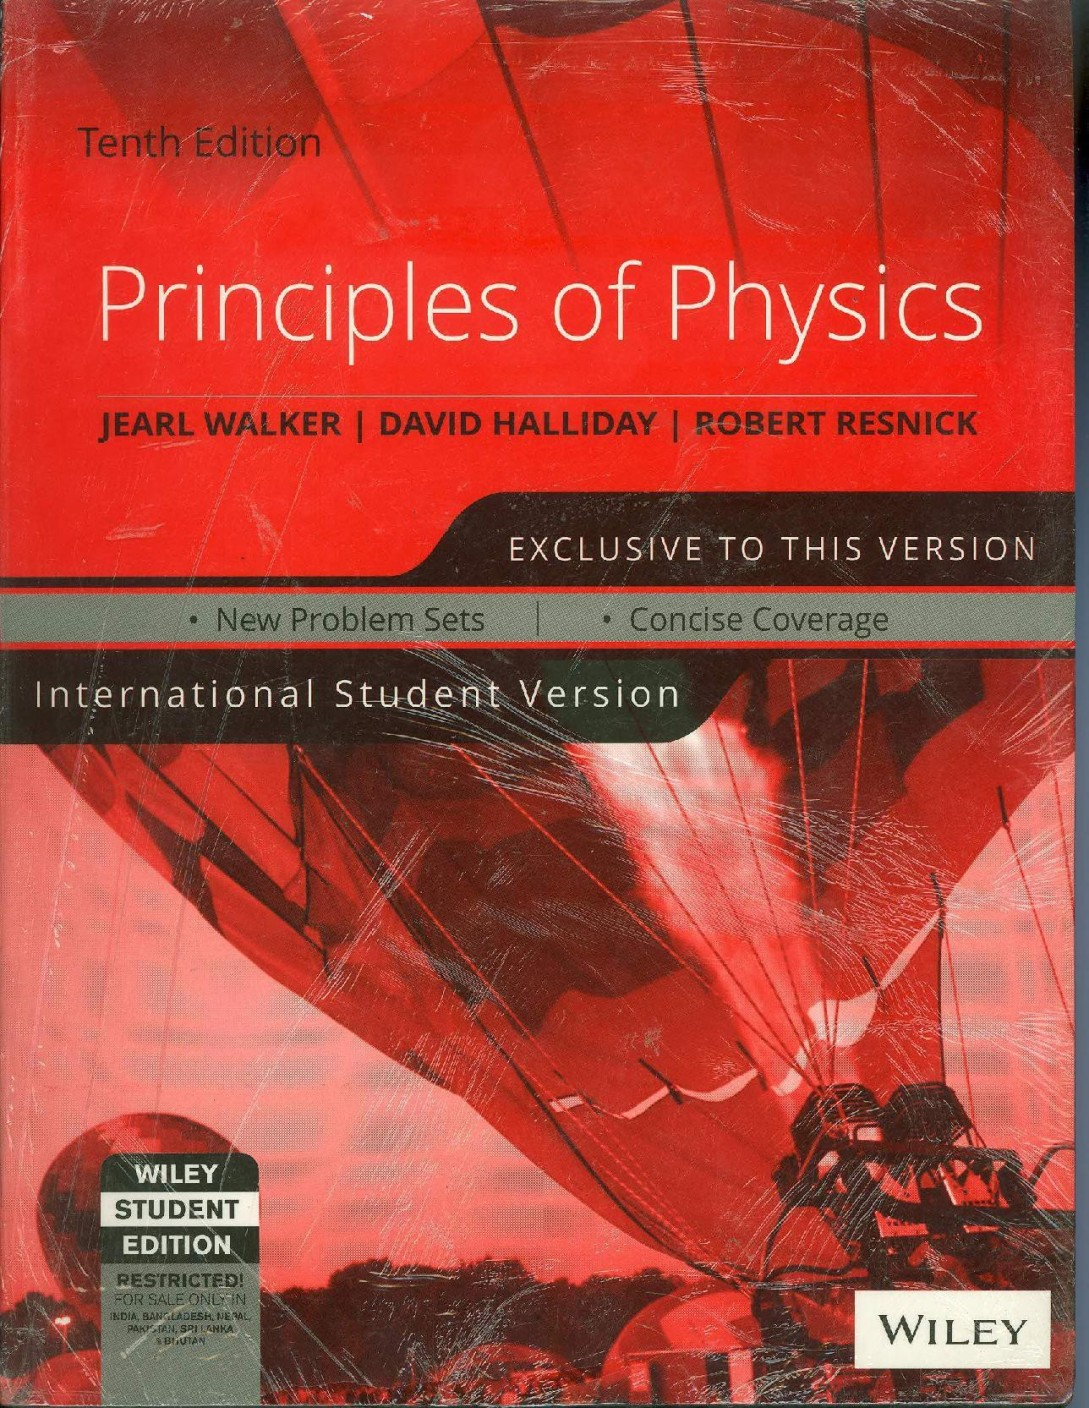 fundamentals of physics 10th edition pdf online